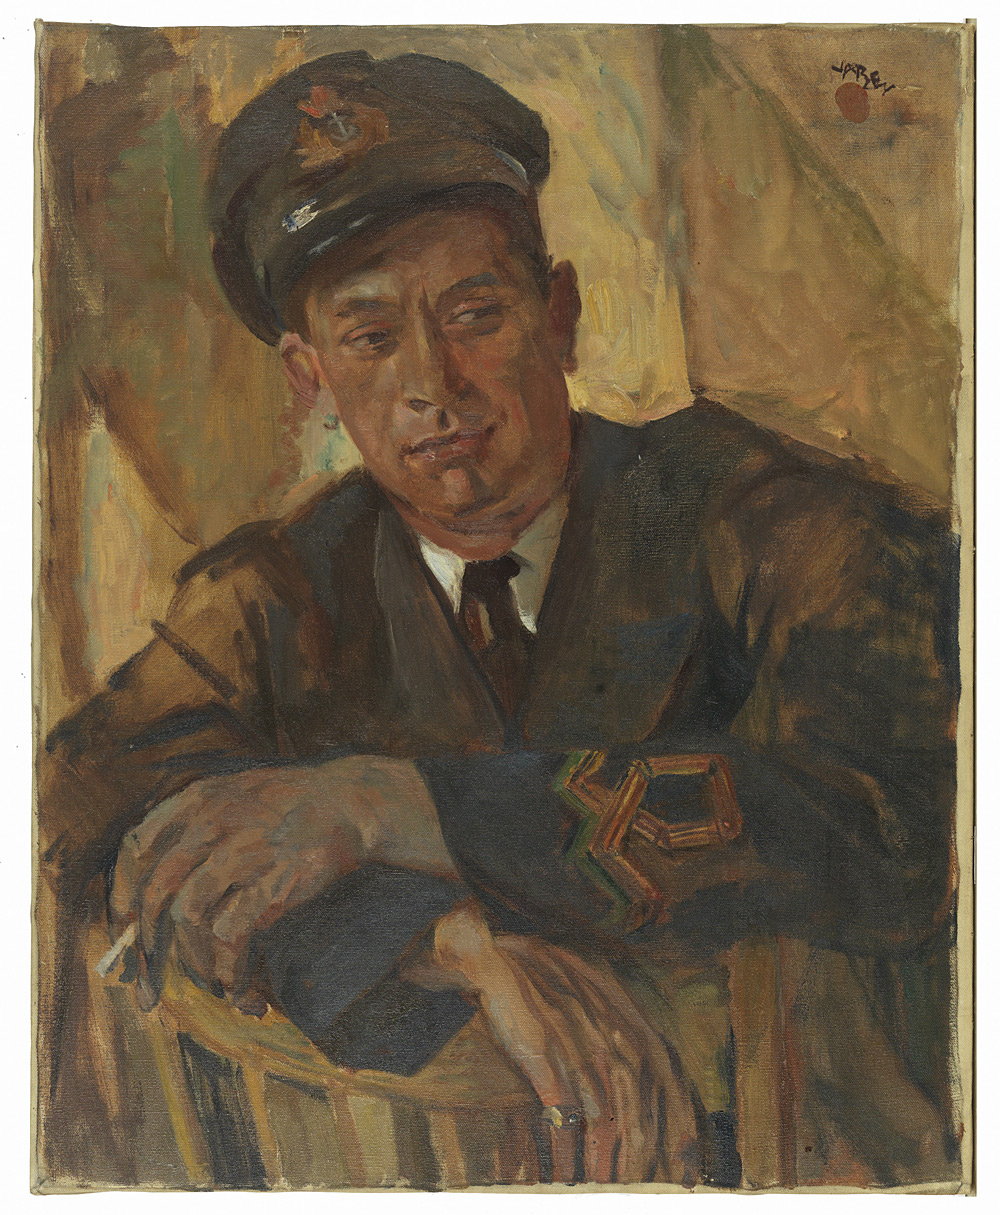 Portrait d'un officier de marine, Harry Kelman